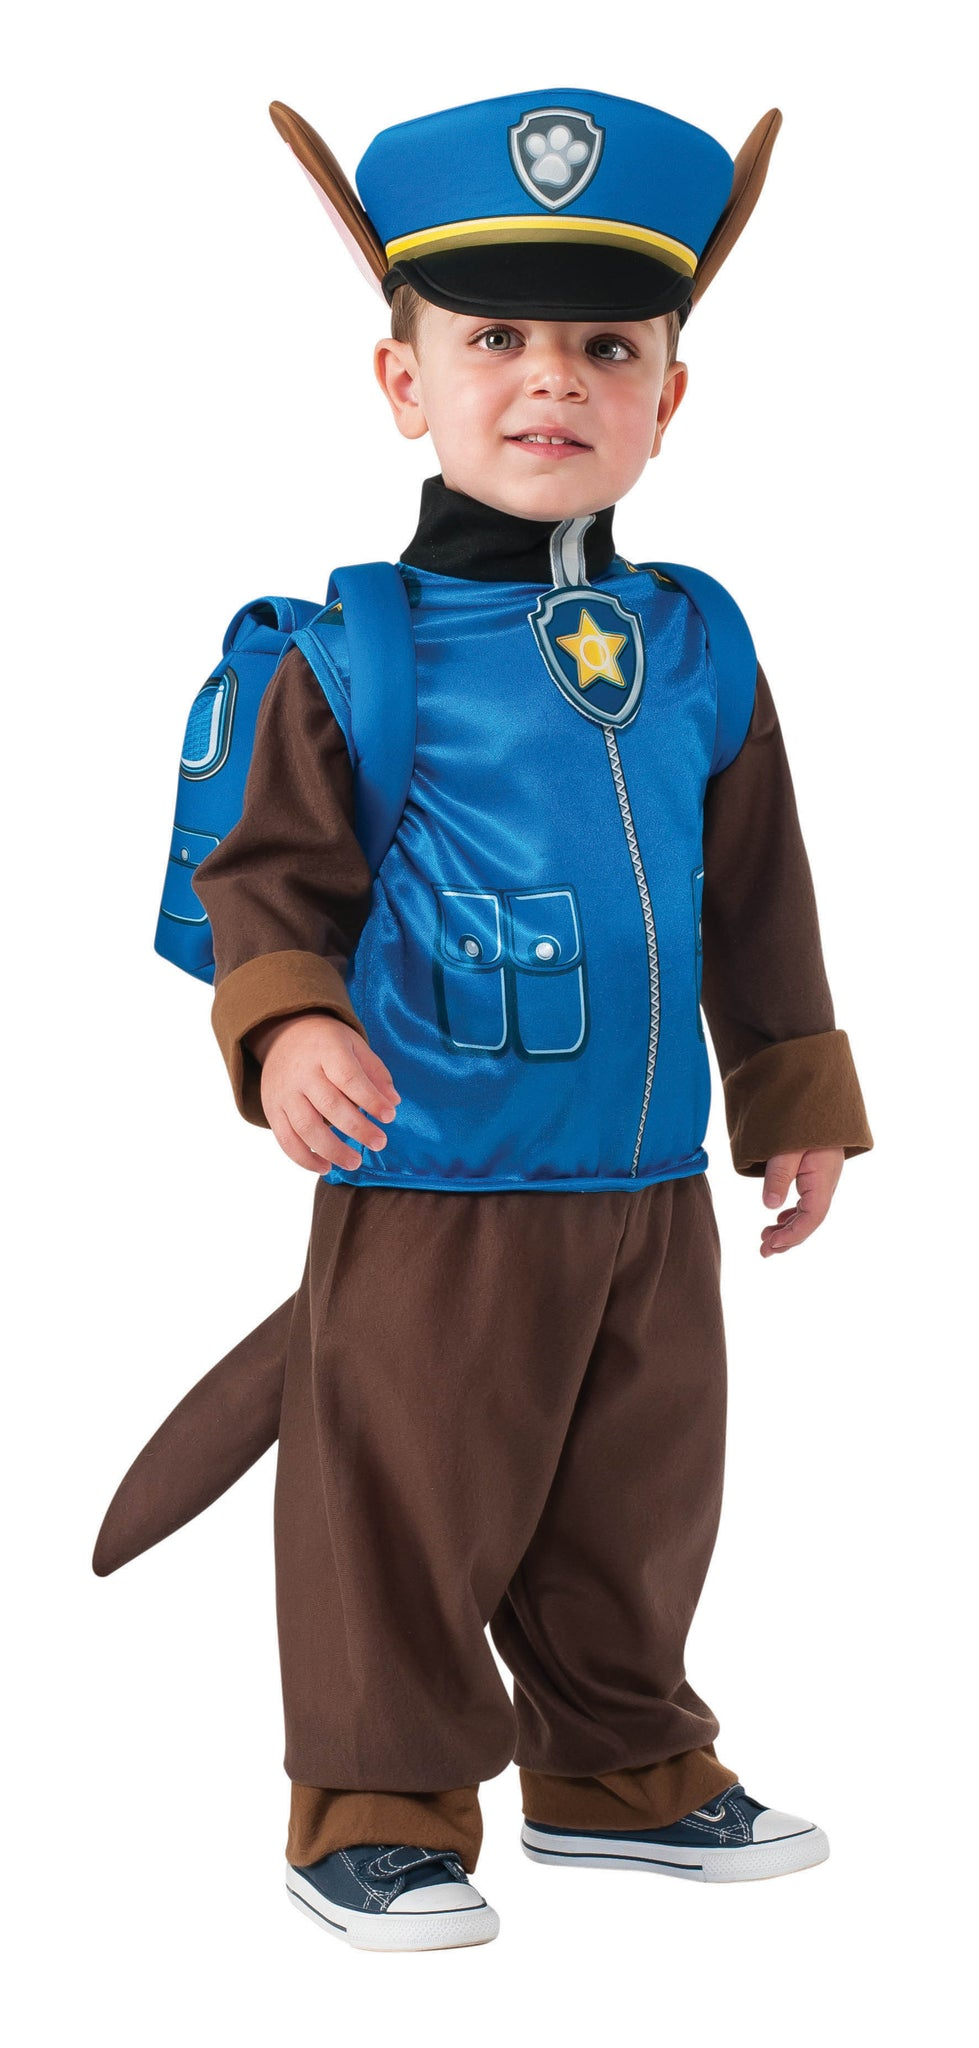 CHASE PAW PATROL COSTUME, CHILD - SIZE S